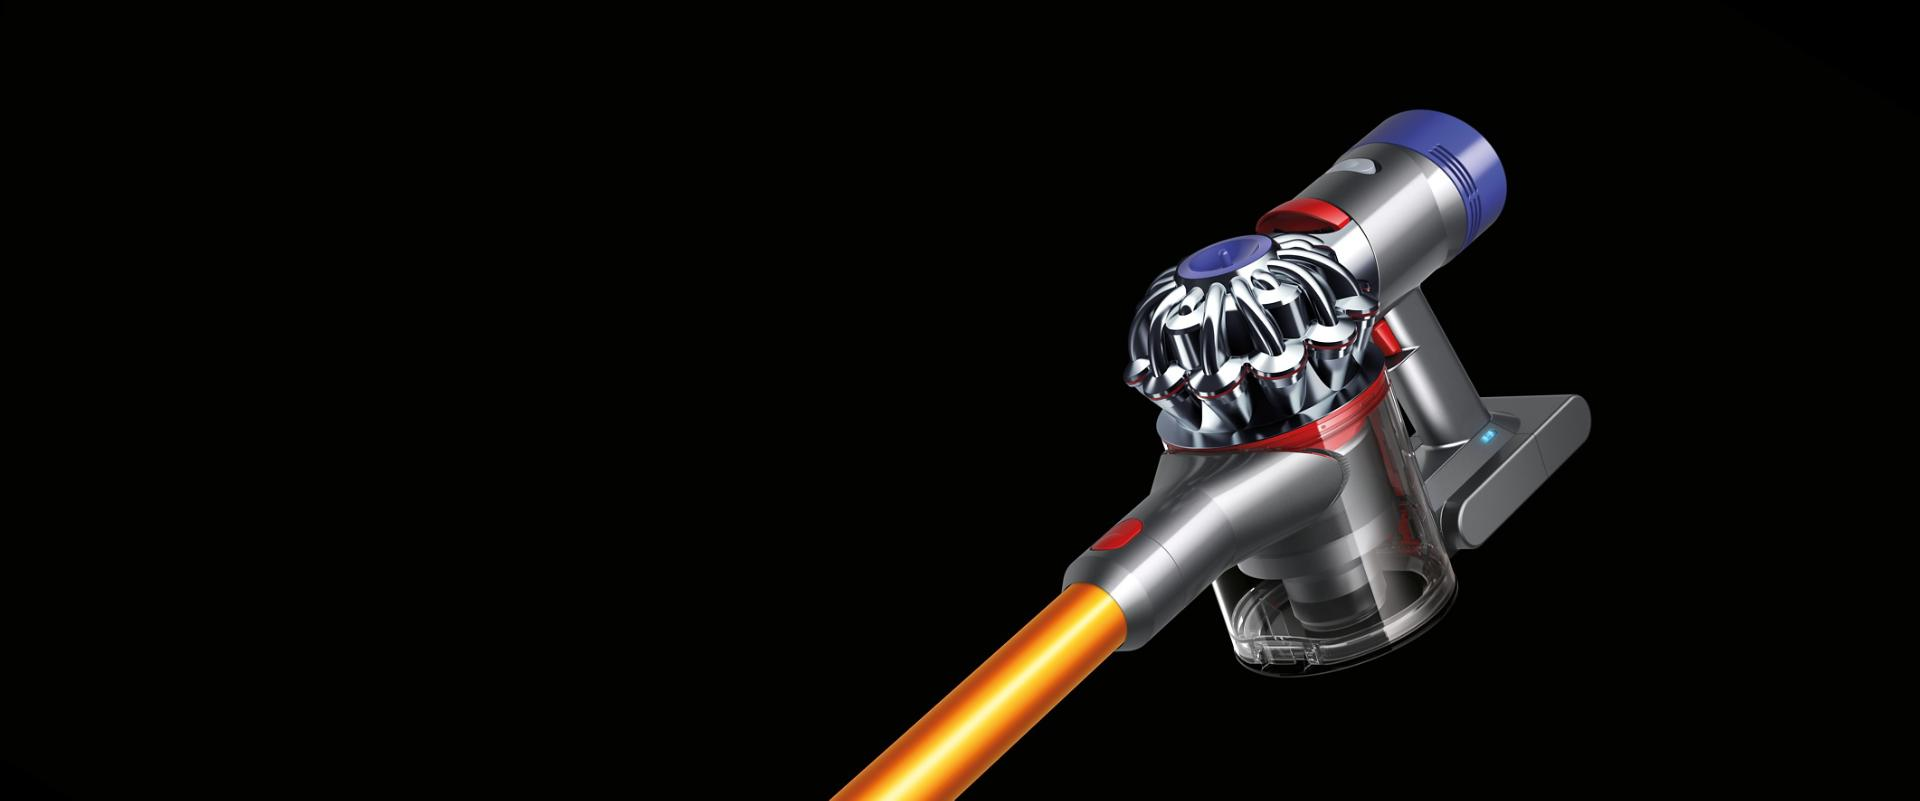 The Dyson V8 vacuum cleaner